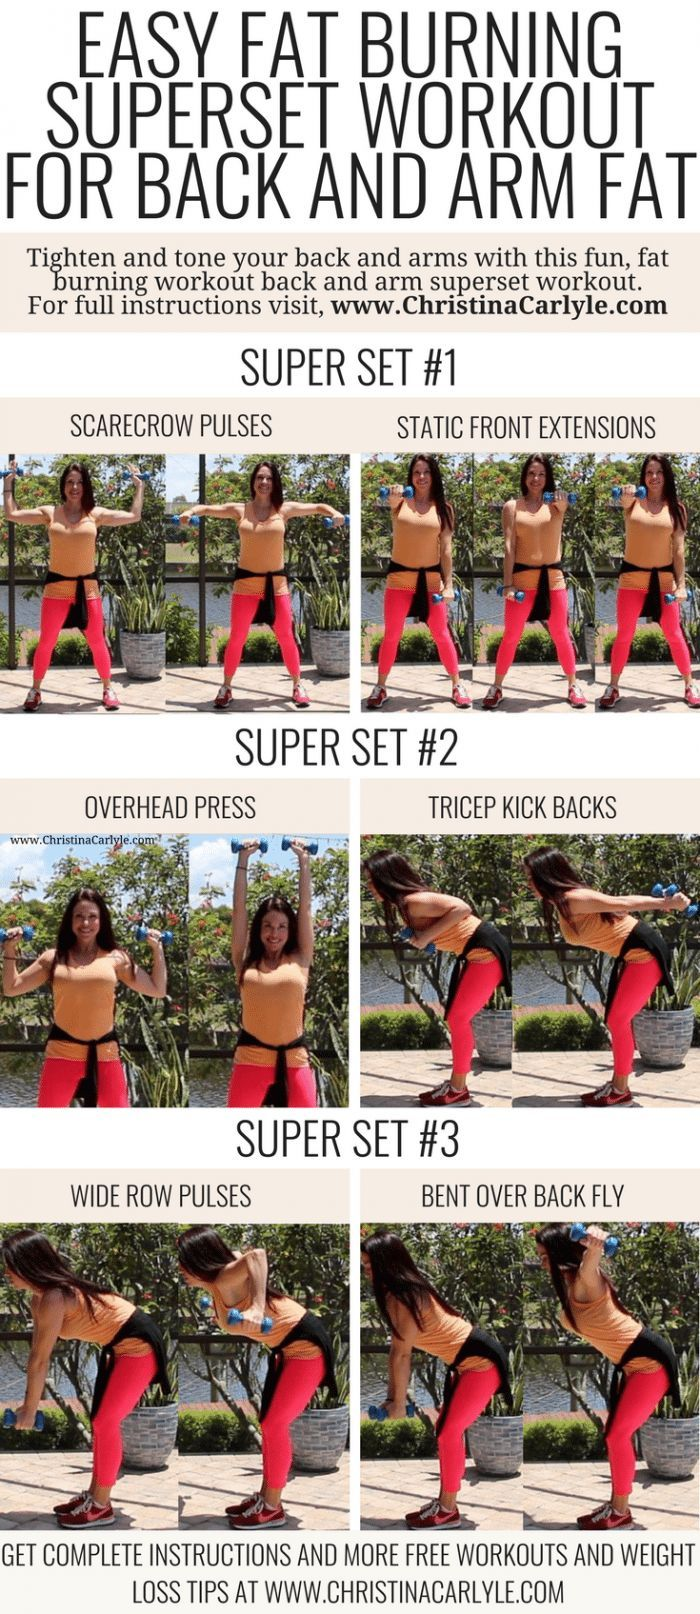 Arm and Back Fat Burning Superset Workout for Women